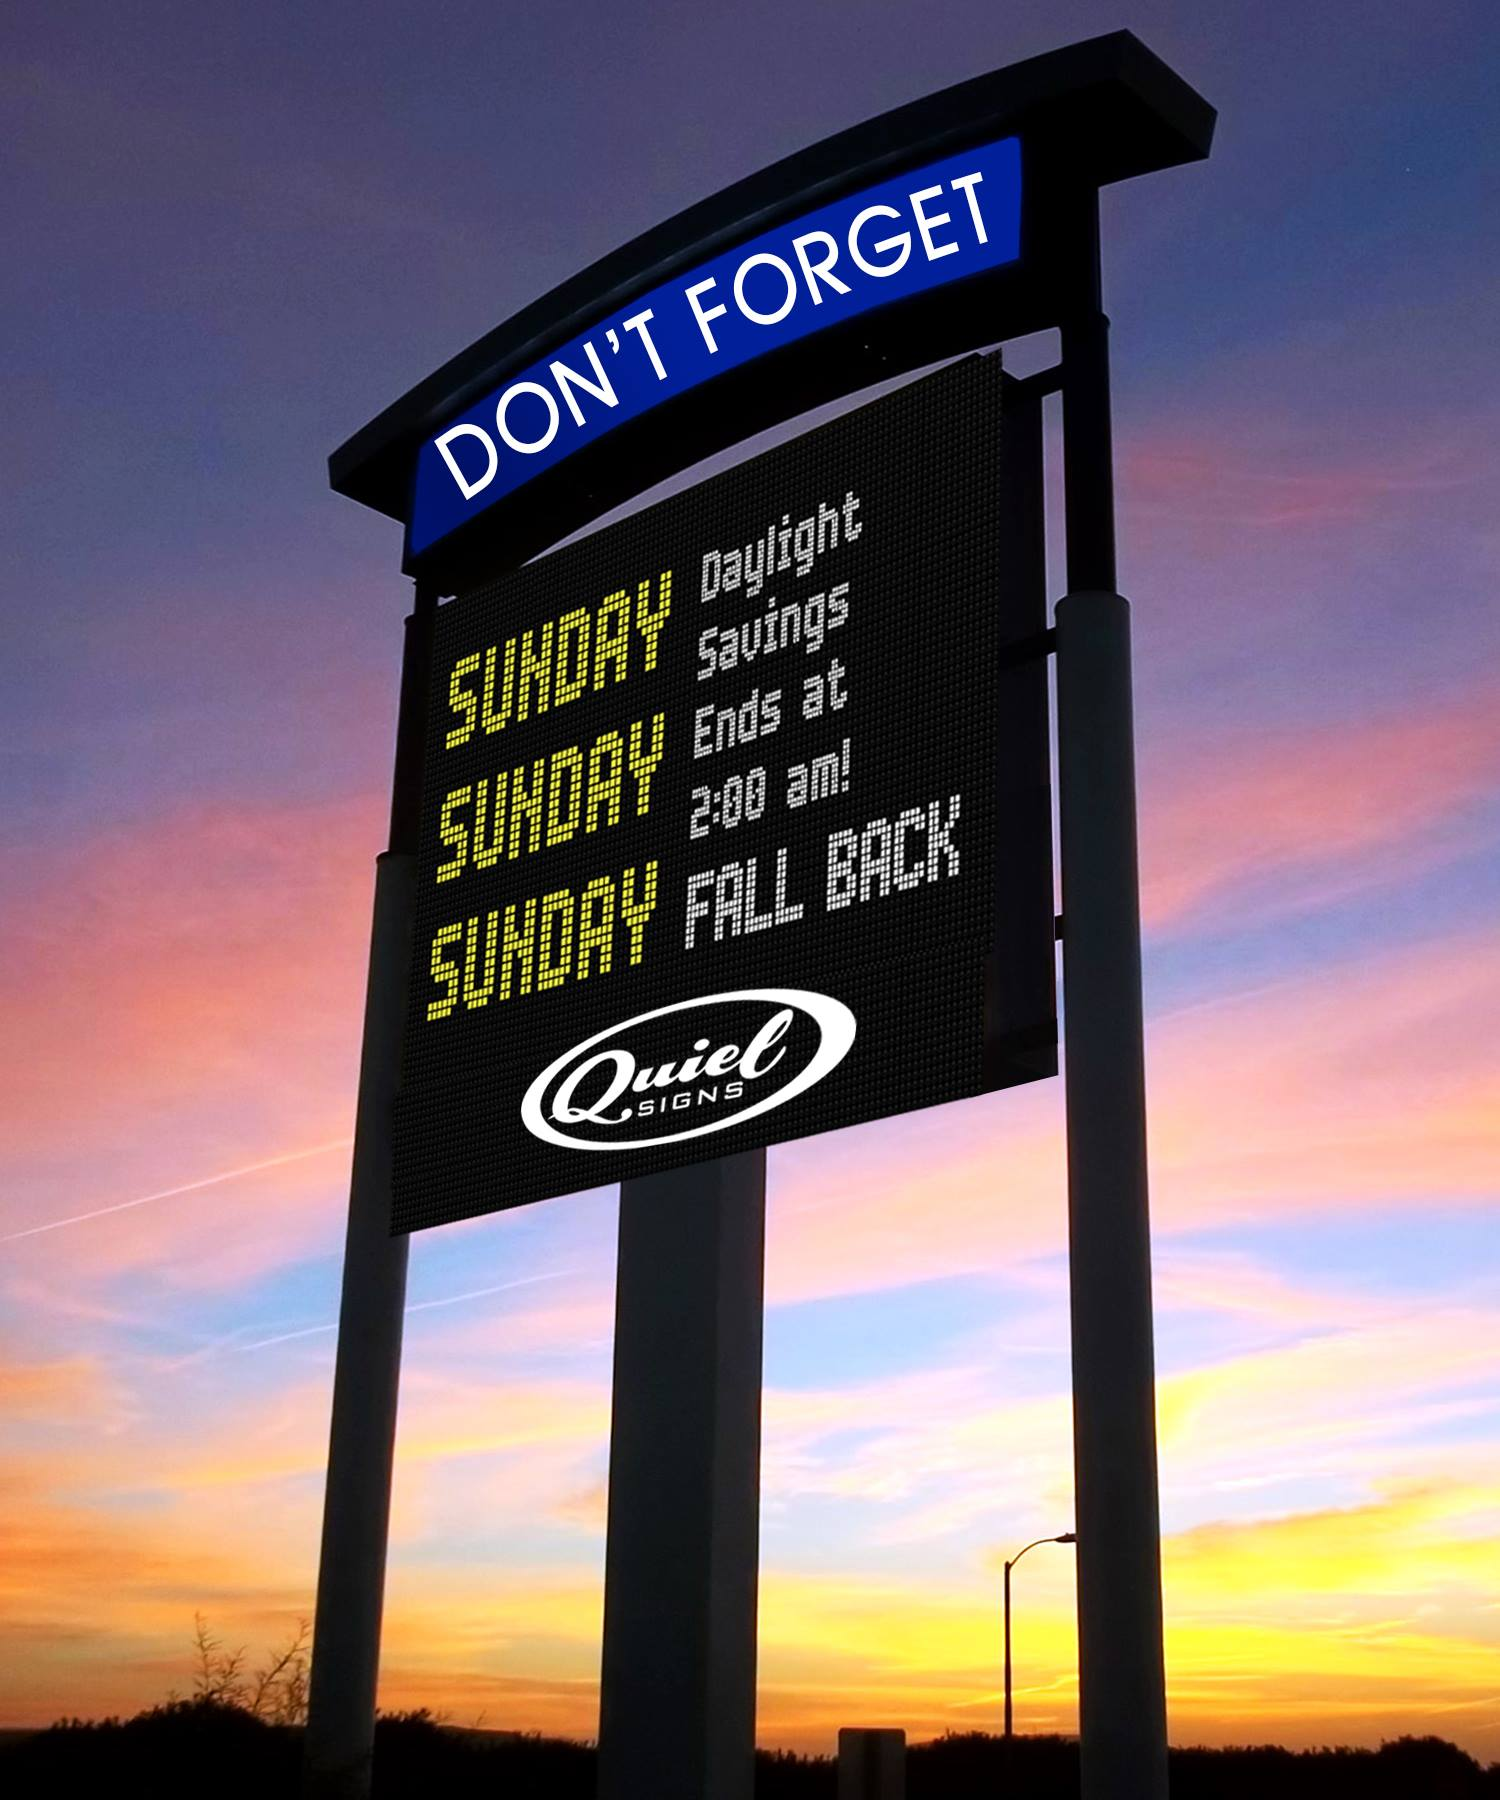 tall LED sign against sunset background